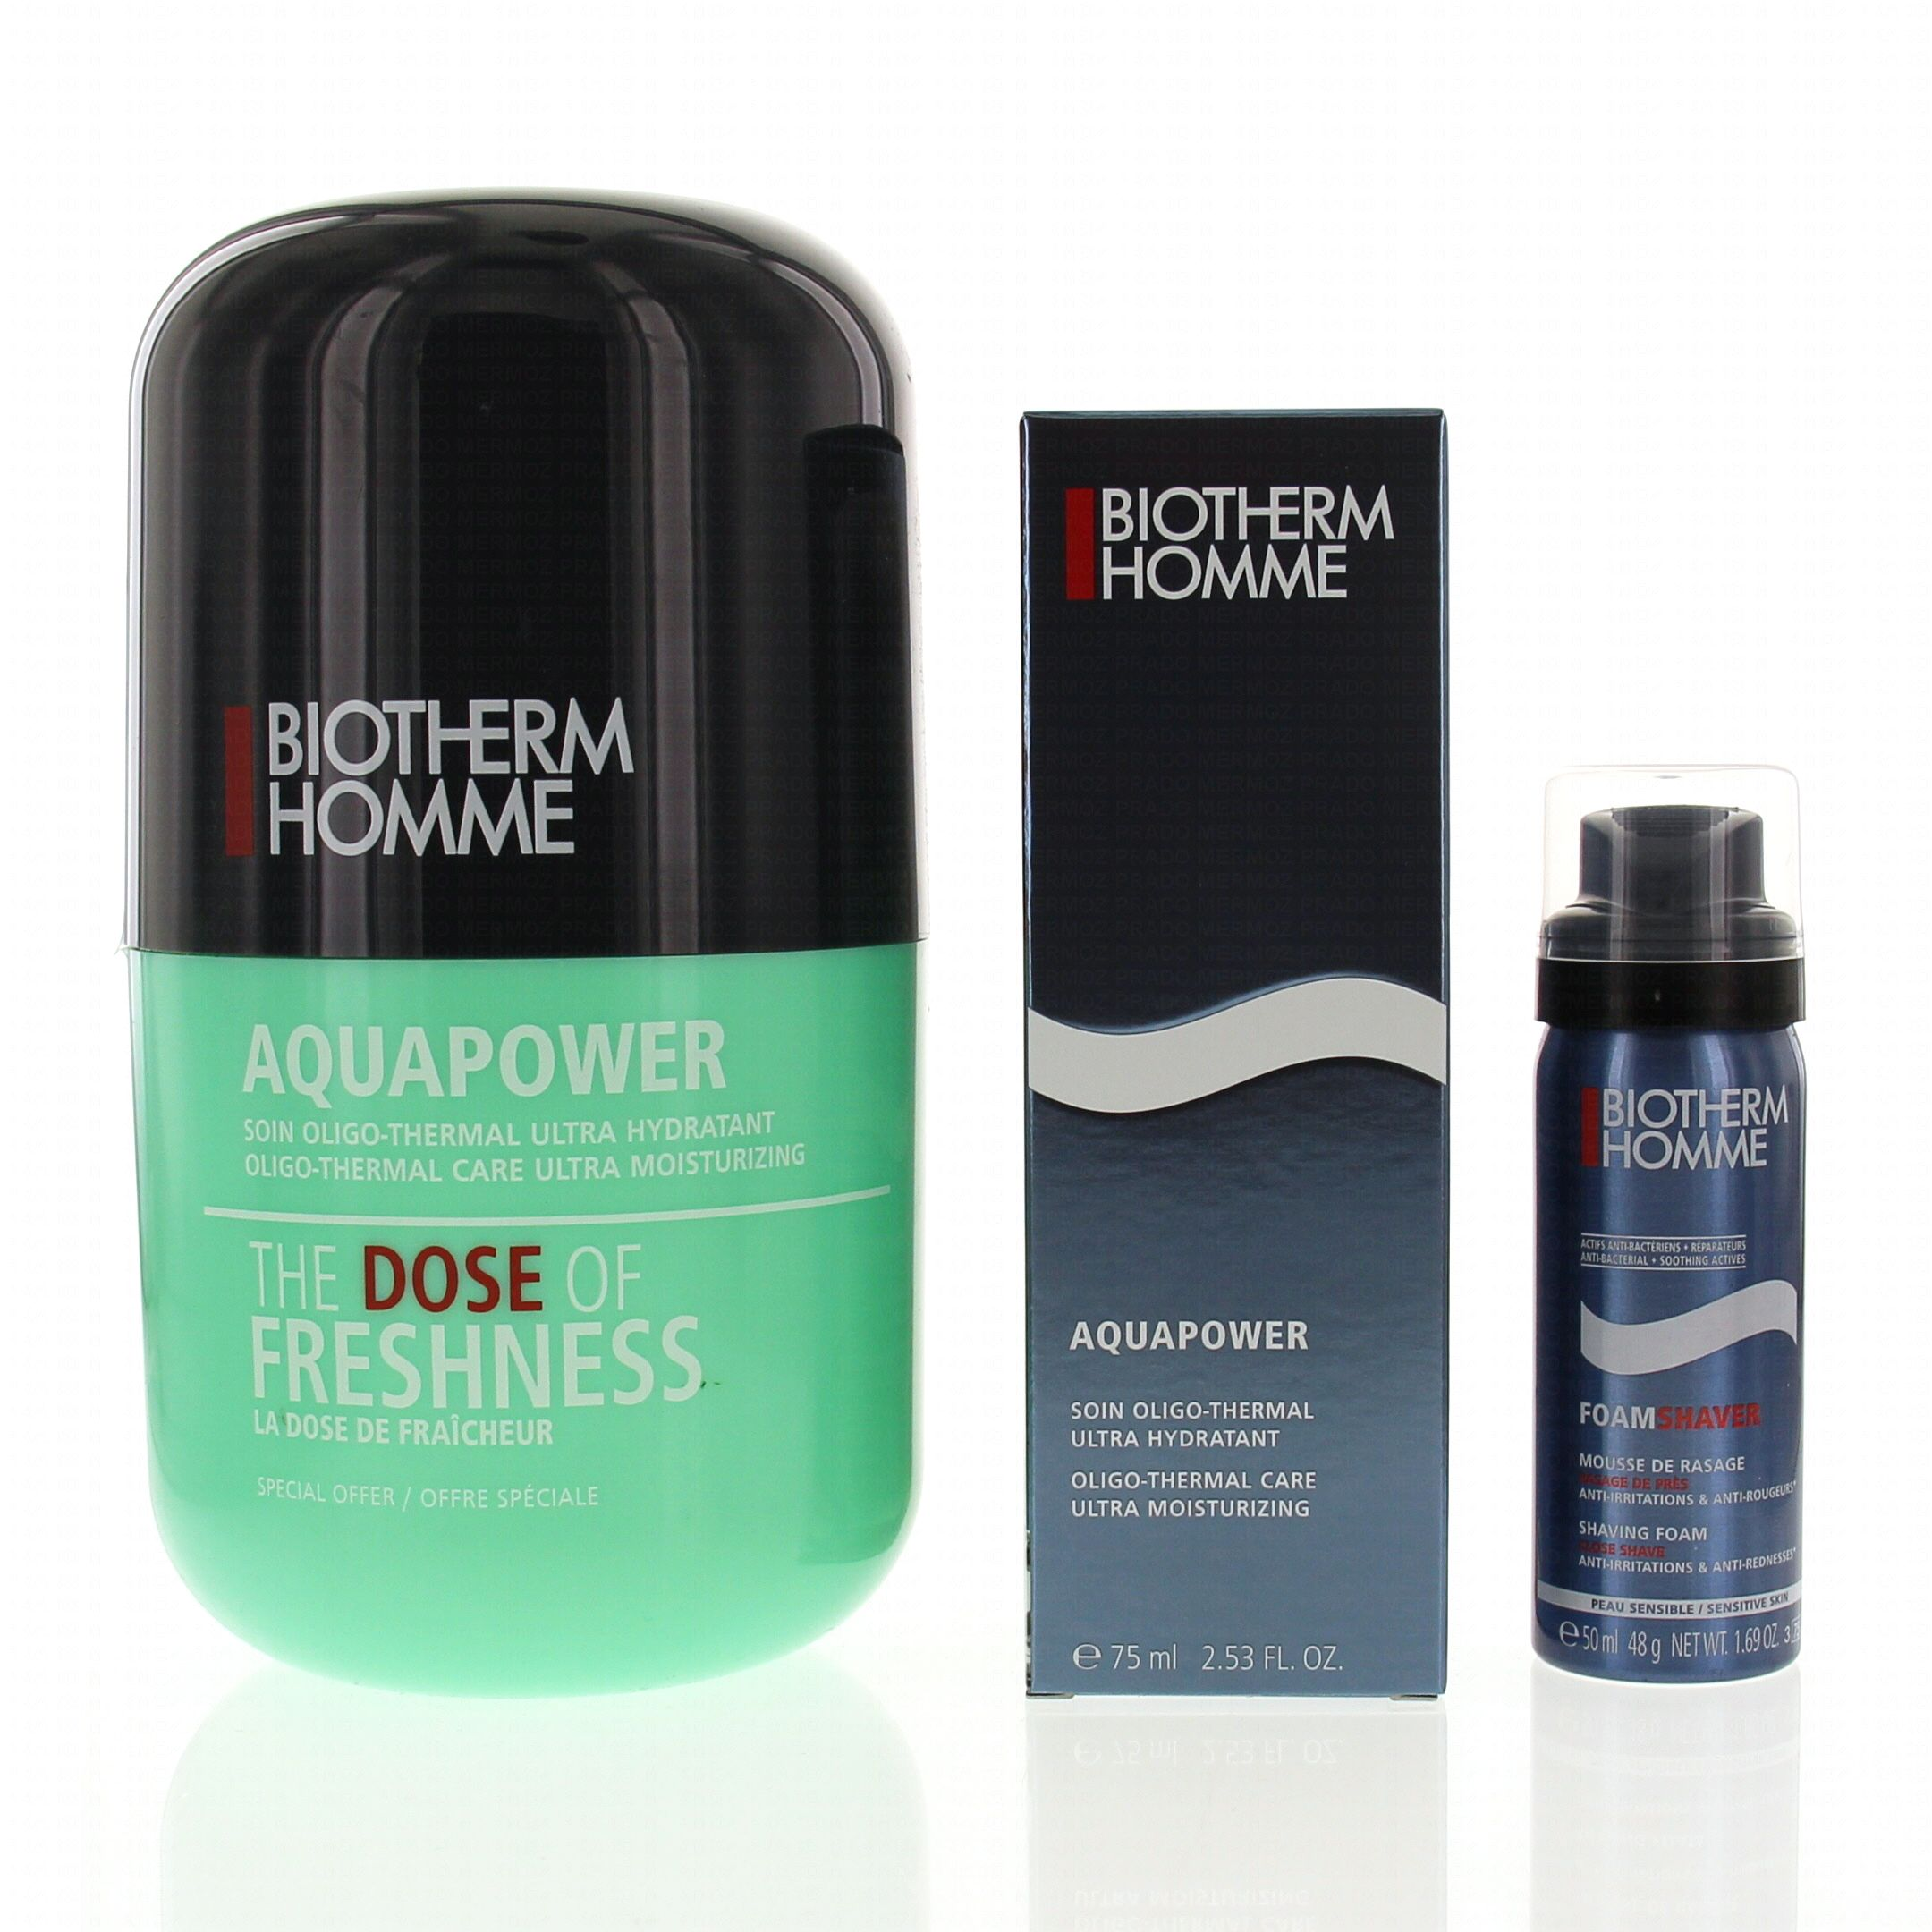 biotherm coffret homme 39 the dose of freshness 39 aquapower soin oligo thermal ultra hydratant. Black Bedroom Furniture Sets. Home Design Ideas